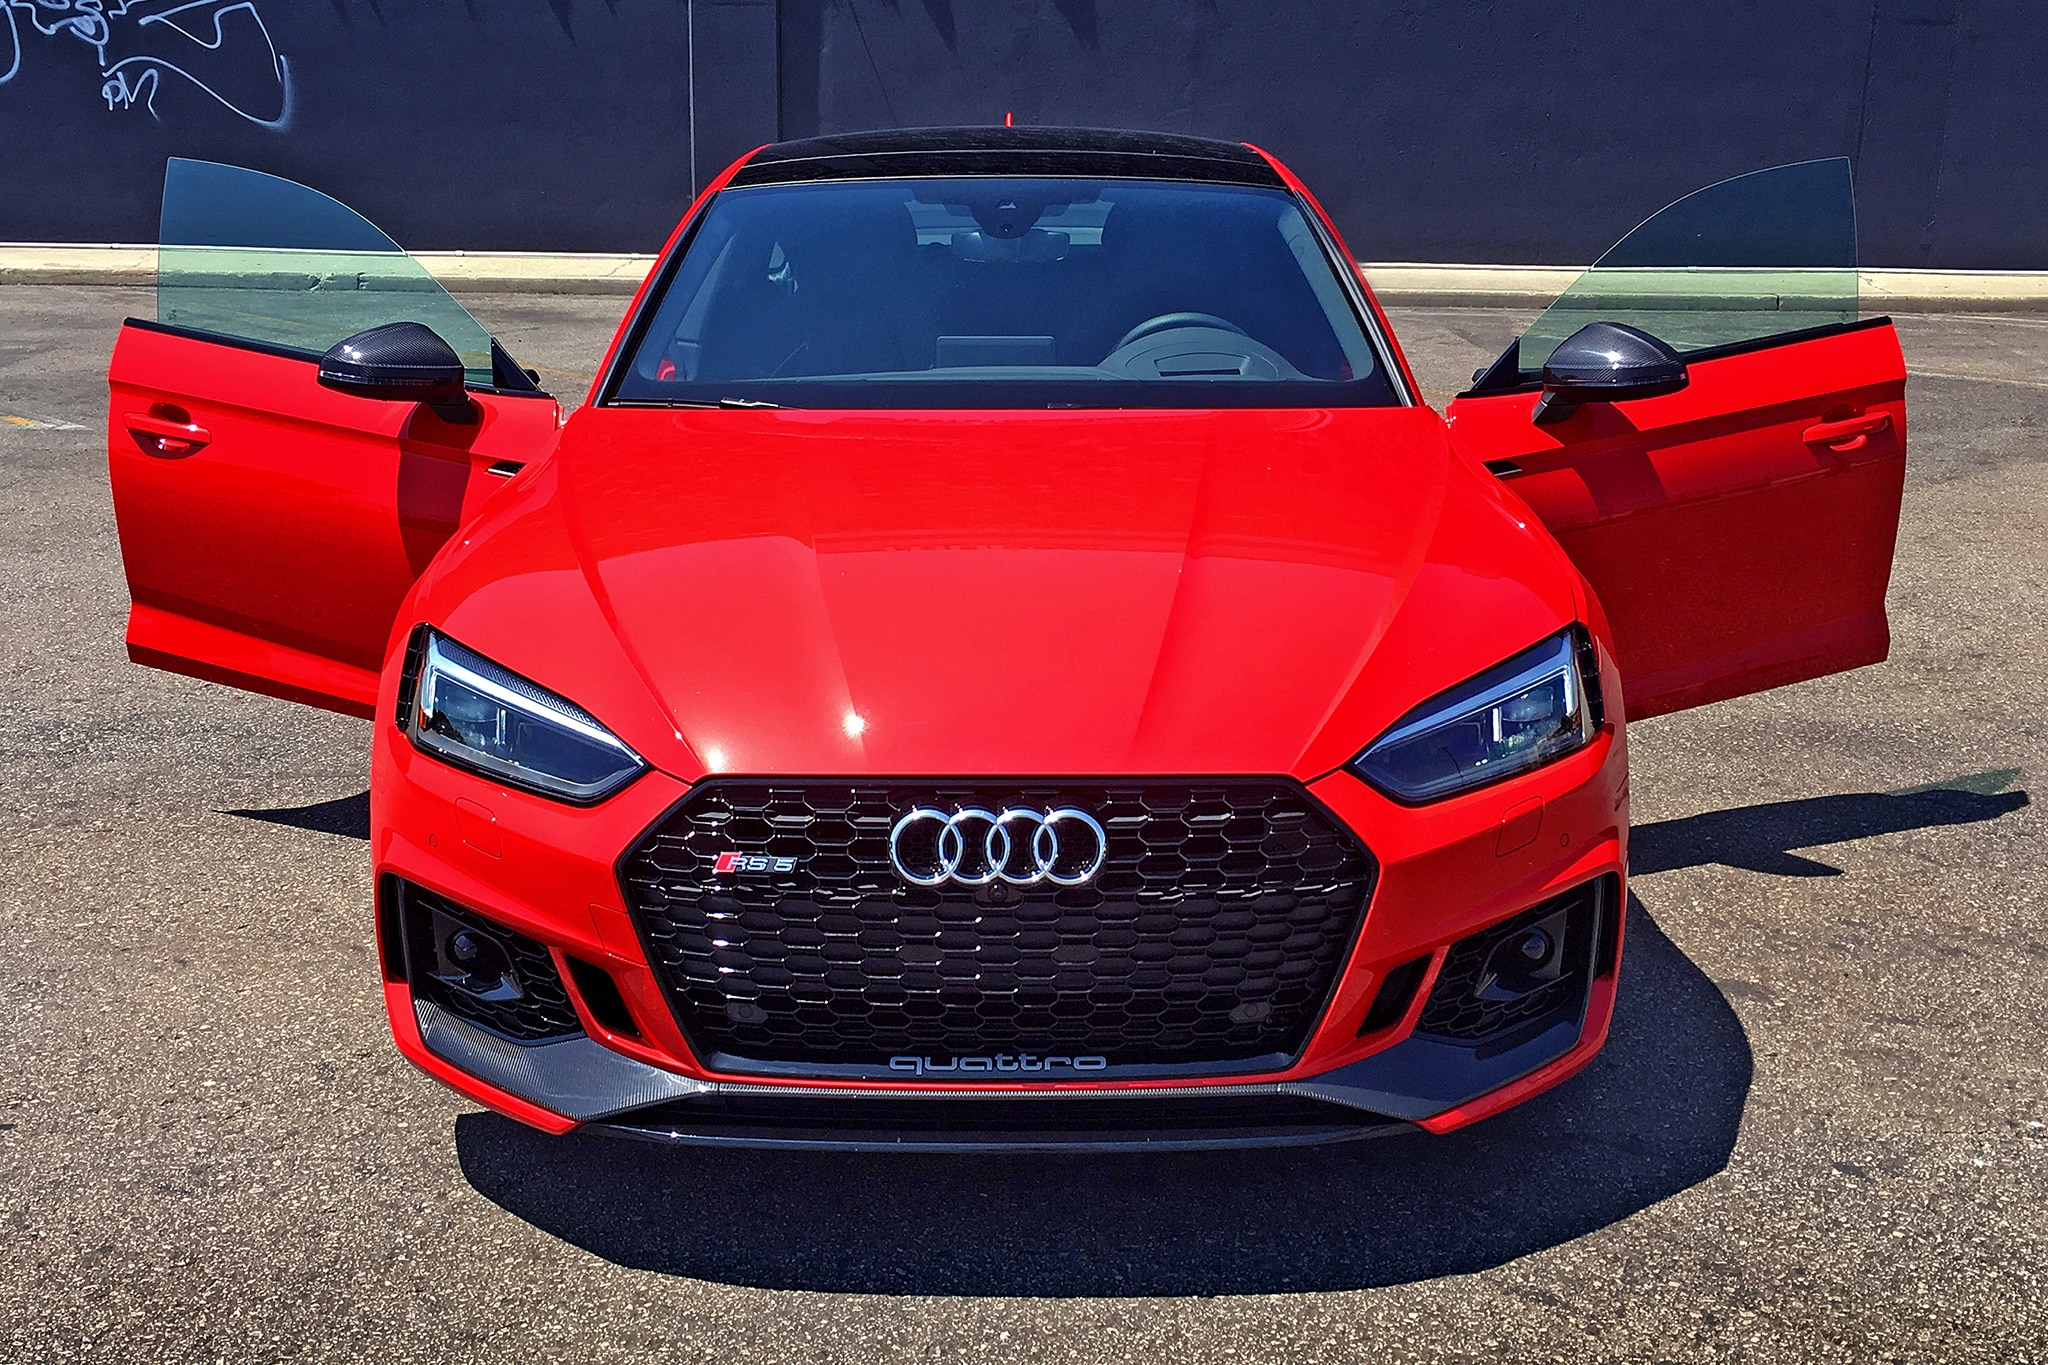 2019 Audi RS5 Sportback Review: An Absolute Monster | Automobile